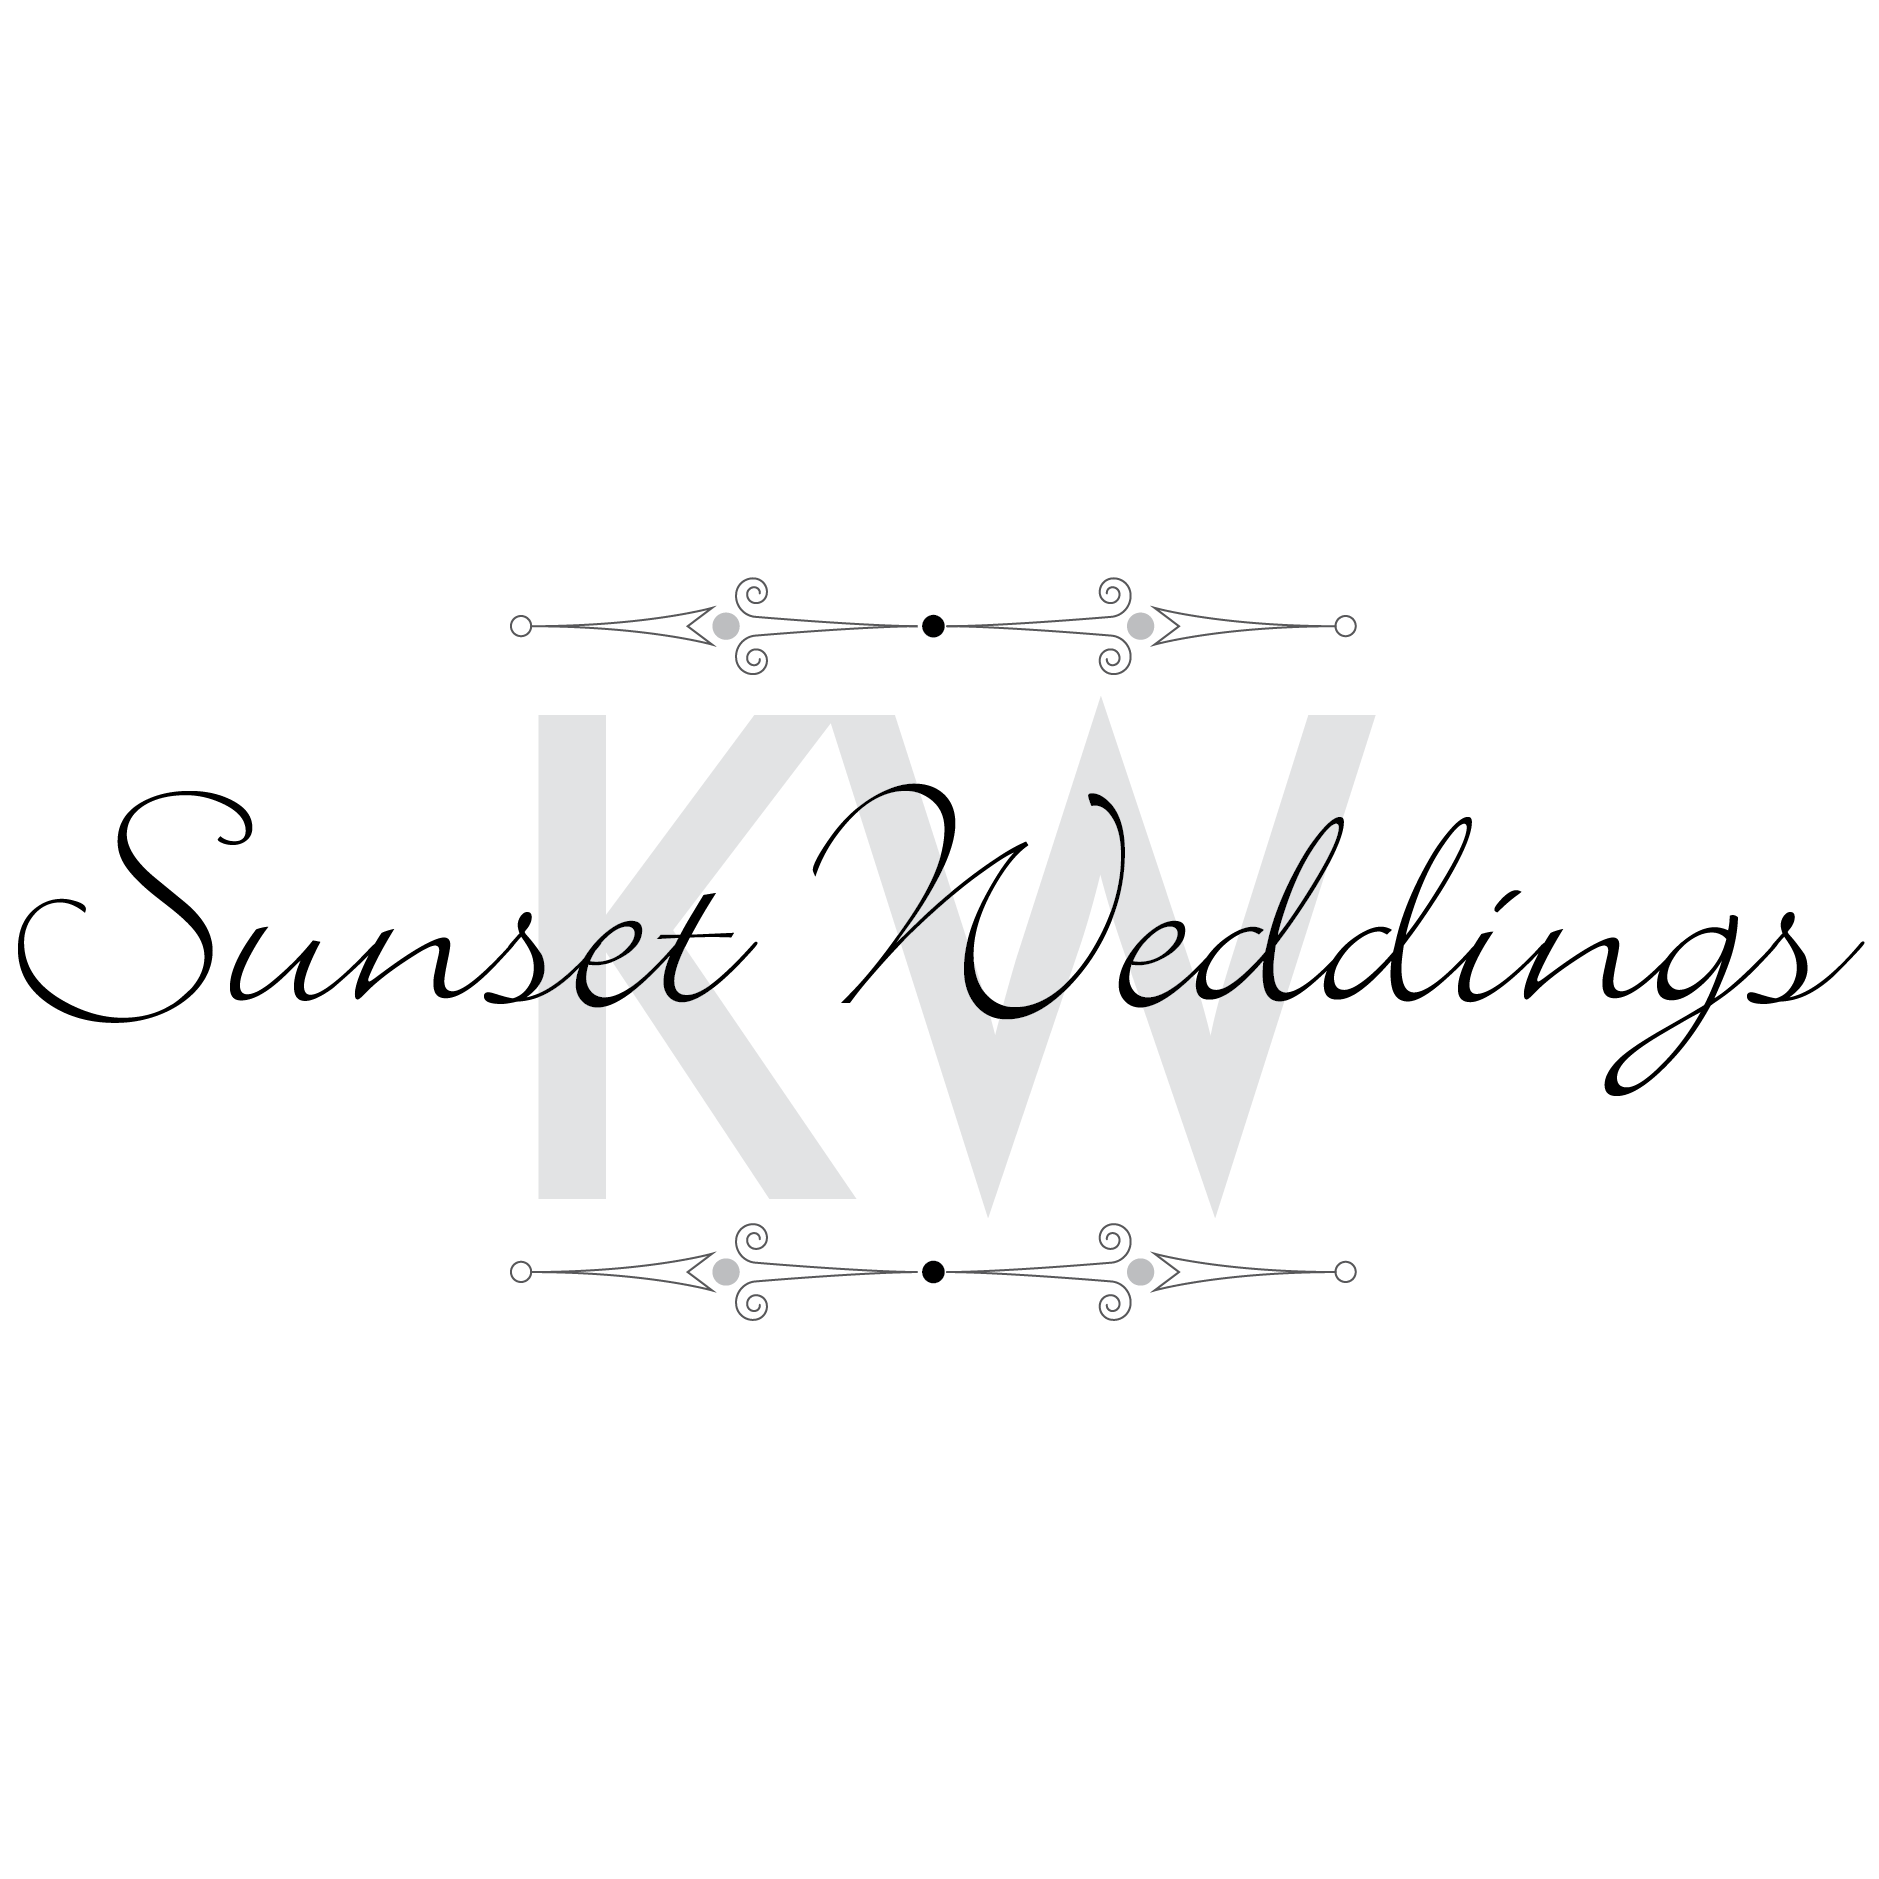 Key West Sunset Weddings